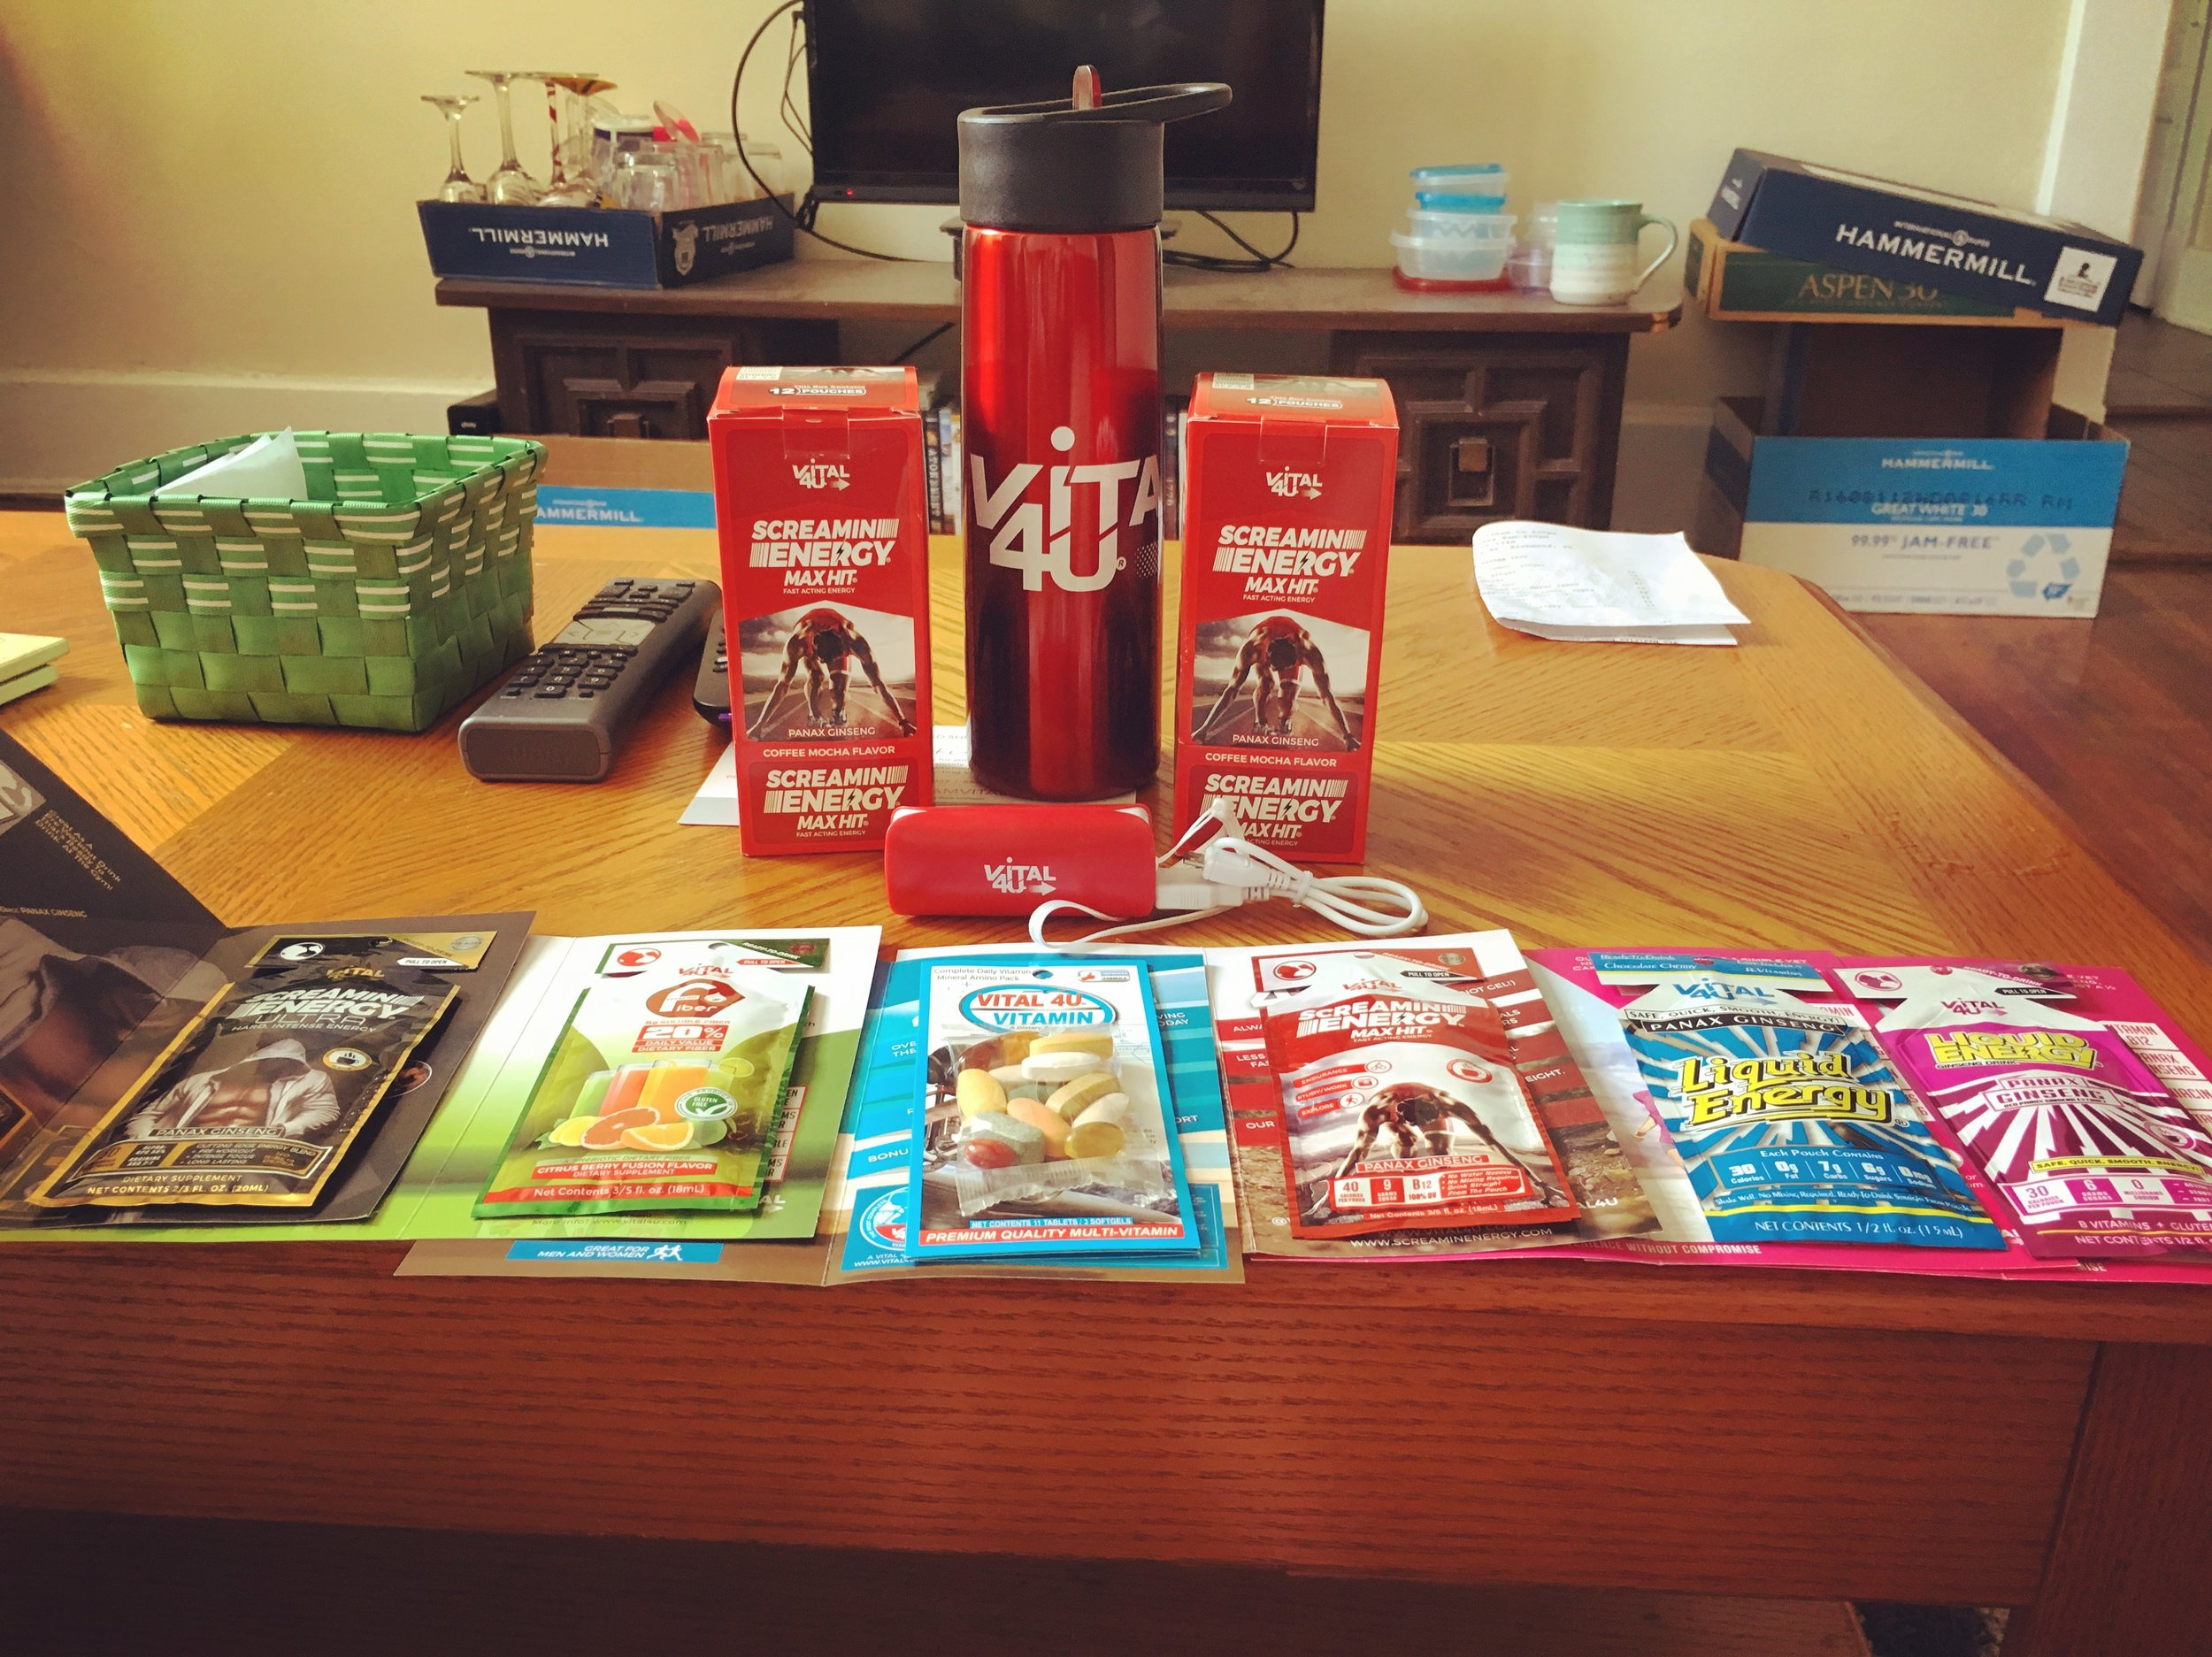 Vital4U's Screamin Energy Ultra, Fiber Packet, Vitamins, Max Hit (!!), and Liquid Energy Drinks. Can we get a heck yeah?